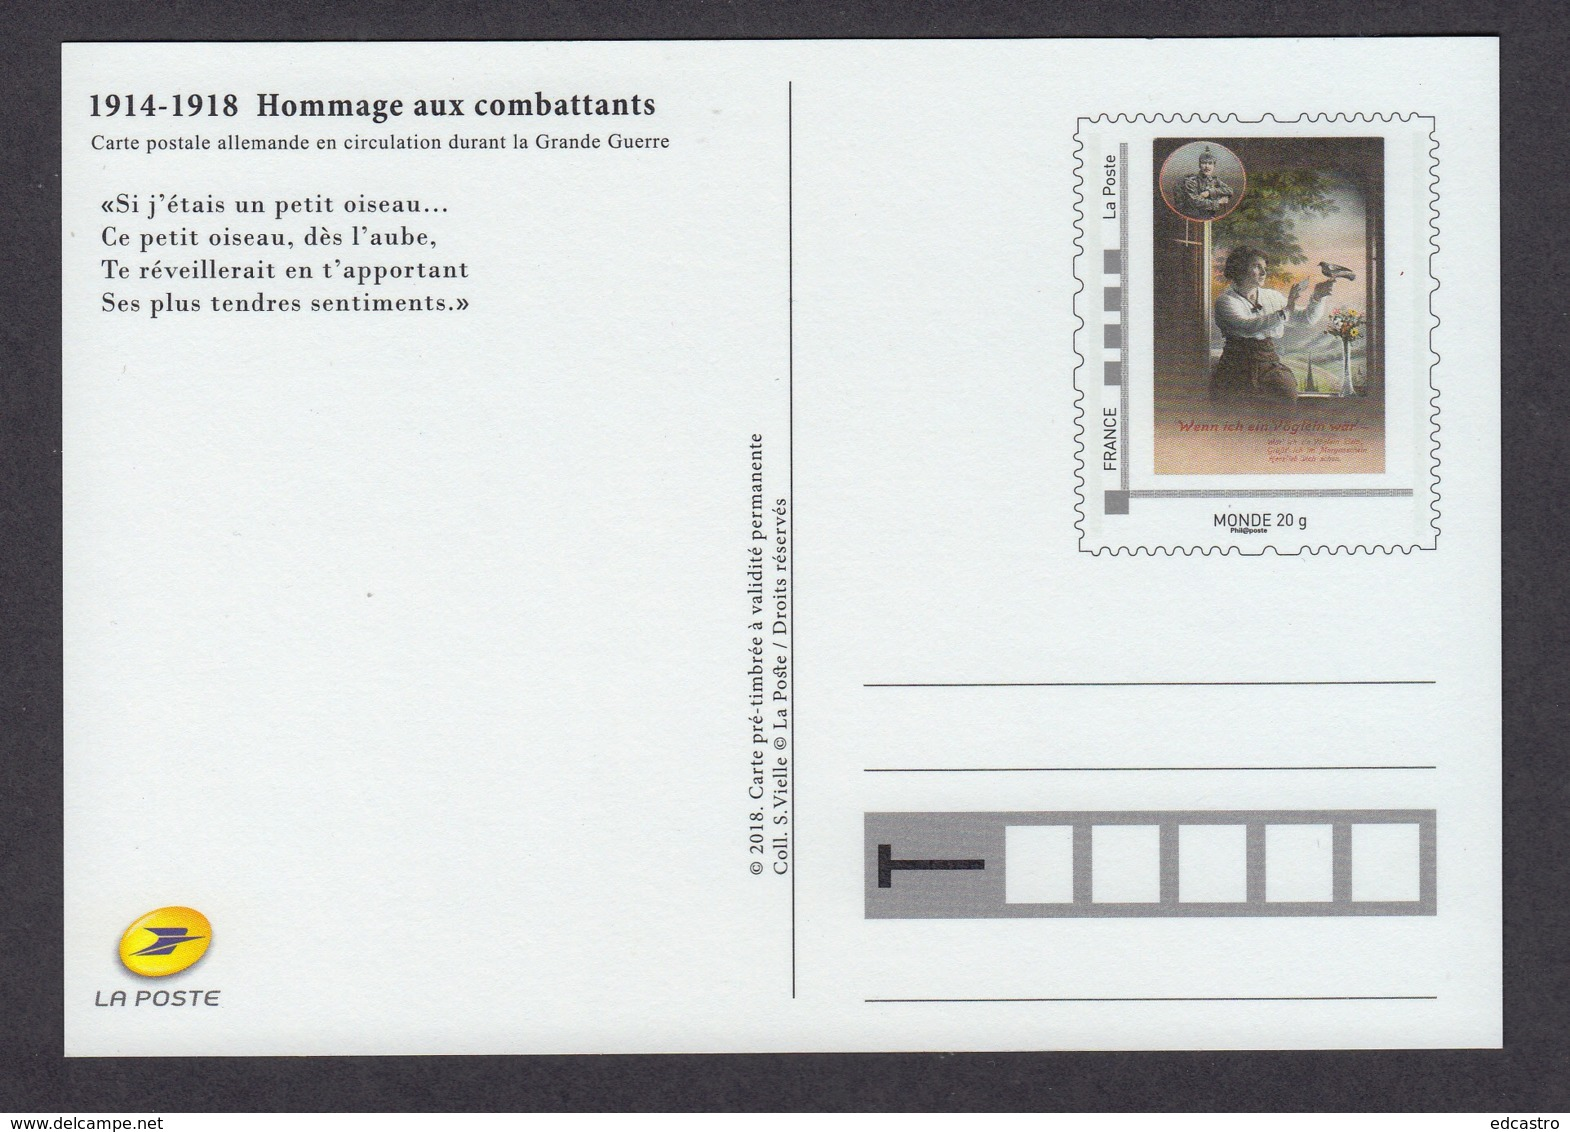 37.- FRANCE 2018 POSTAL STATIONERY - TRIBUTE TO THE SOLDIERS OF FIRST WORLD WAR - Prima Guerra Mondiale